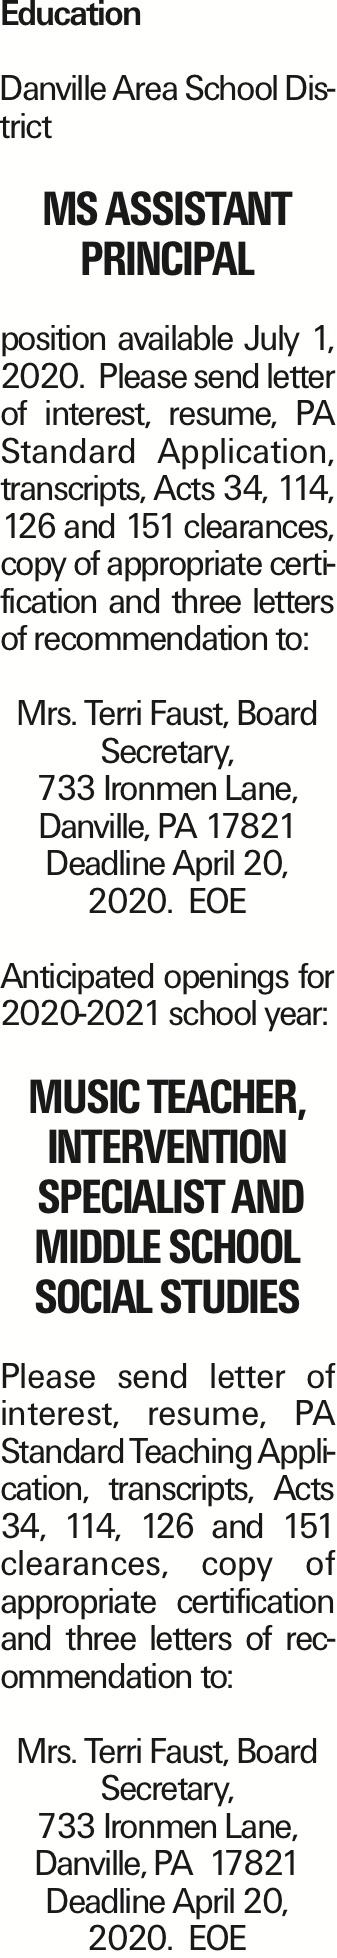 Education Danville Area School District MS Assistant Principal position available July 1, 2020. Please send letter of interest, resume, PA Standard Application, transcripts, Acts 34, 114, 126 and 151 clearances, copy of appropriate certification and three letters of recommendation to: Mrs. Terri Faust, Board Secretary, 733 Ironmen Lane, Danville, PA 17821 Deadline April 20, 2020. EOE Anticipated openings for 2020-2021 school year: Music Teacher, Intervention Specialist and Middle School Social Studies Please send letter of interest, resume, PA Standard Teaching Application, transcripts, Acts 34, 114, 126 and 151 clearances, copy of appropriate certification and three letters of recommendation to: Mrs. Terri Faust, Board Secretary, 733 Ironmen Lane, Danville, PA 17821 Deadline April 20, 2020. EOE As published in the Press Enterprise.